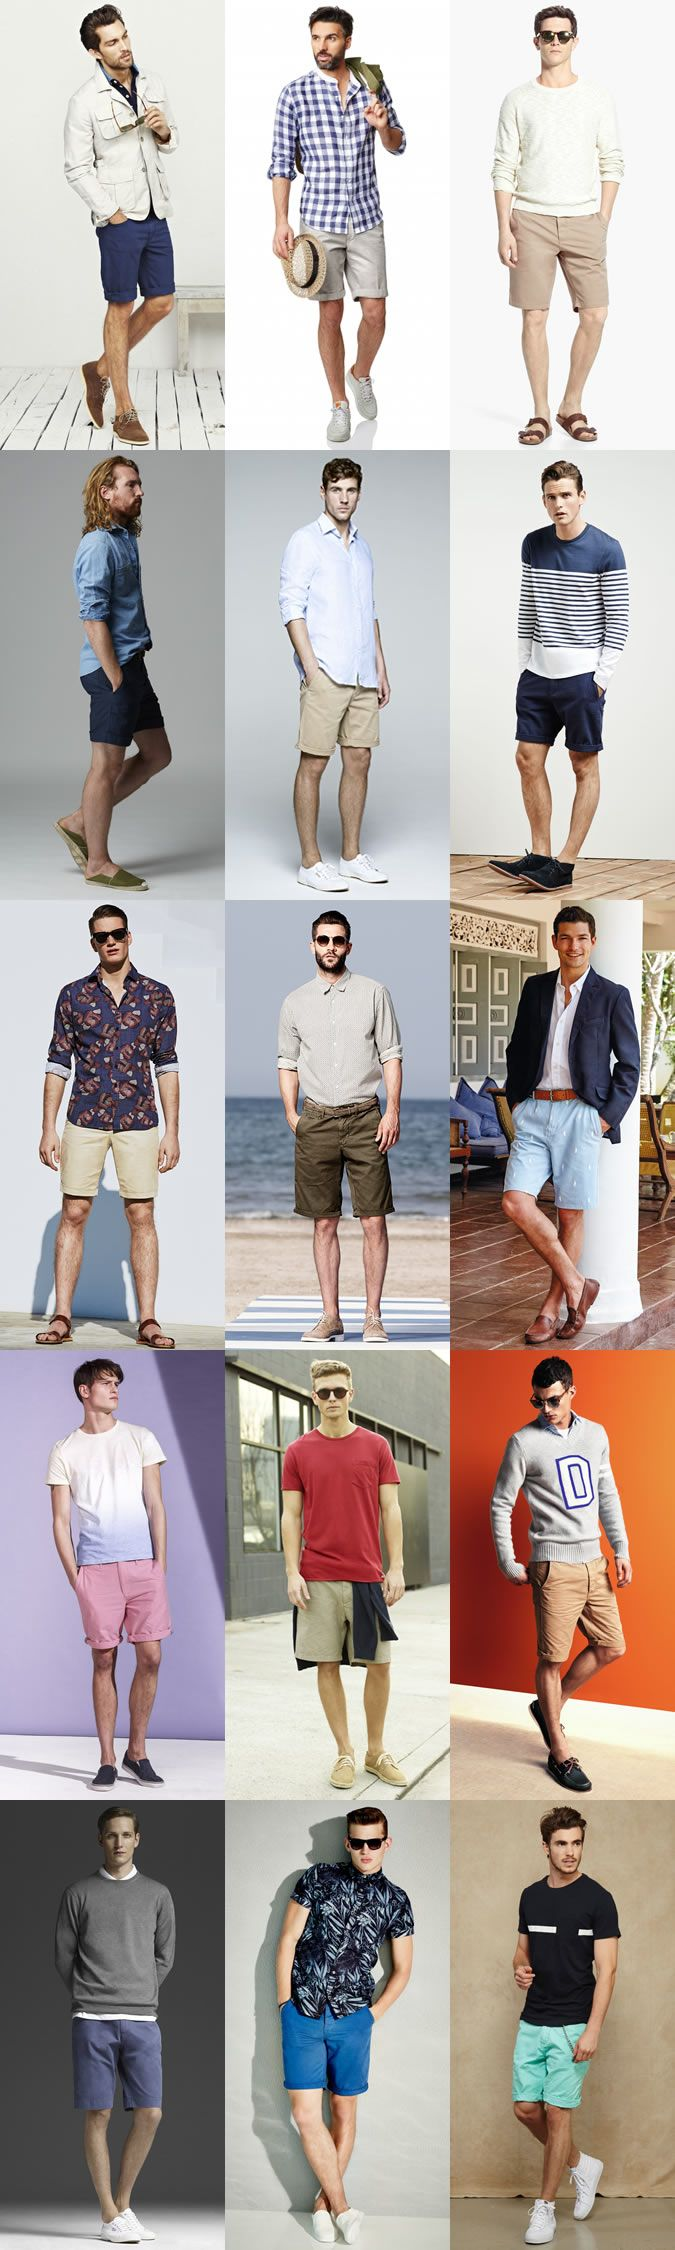 Shorts & Shoes Combinations